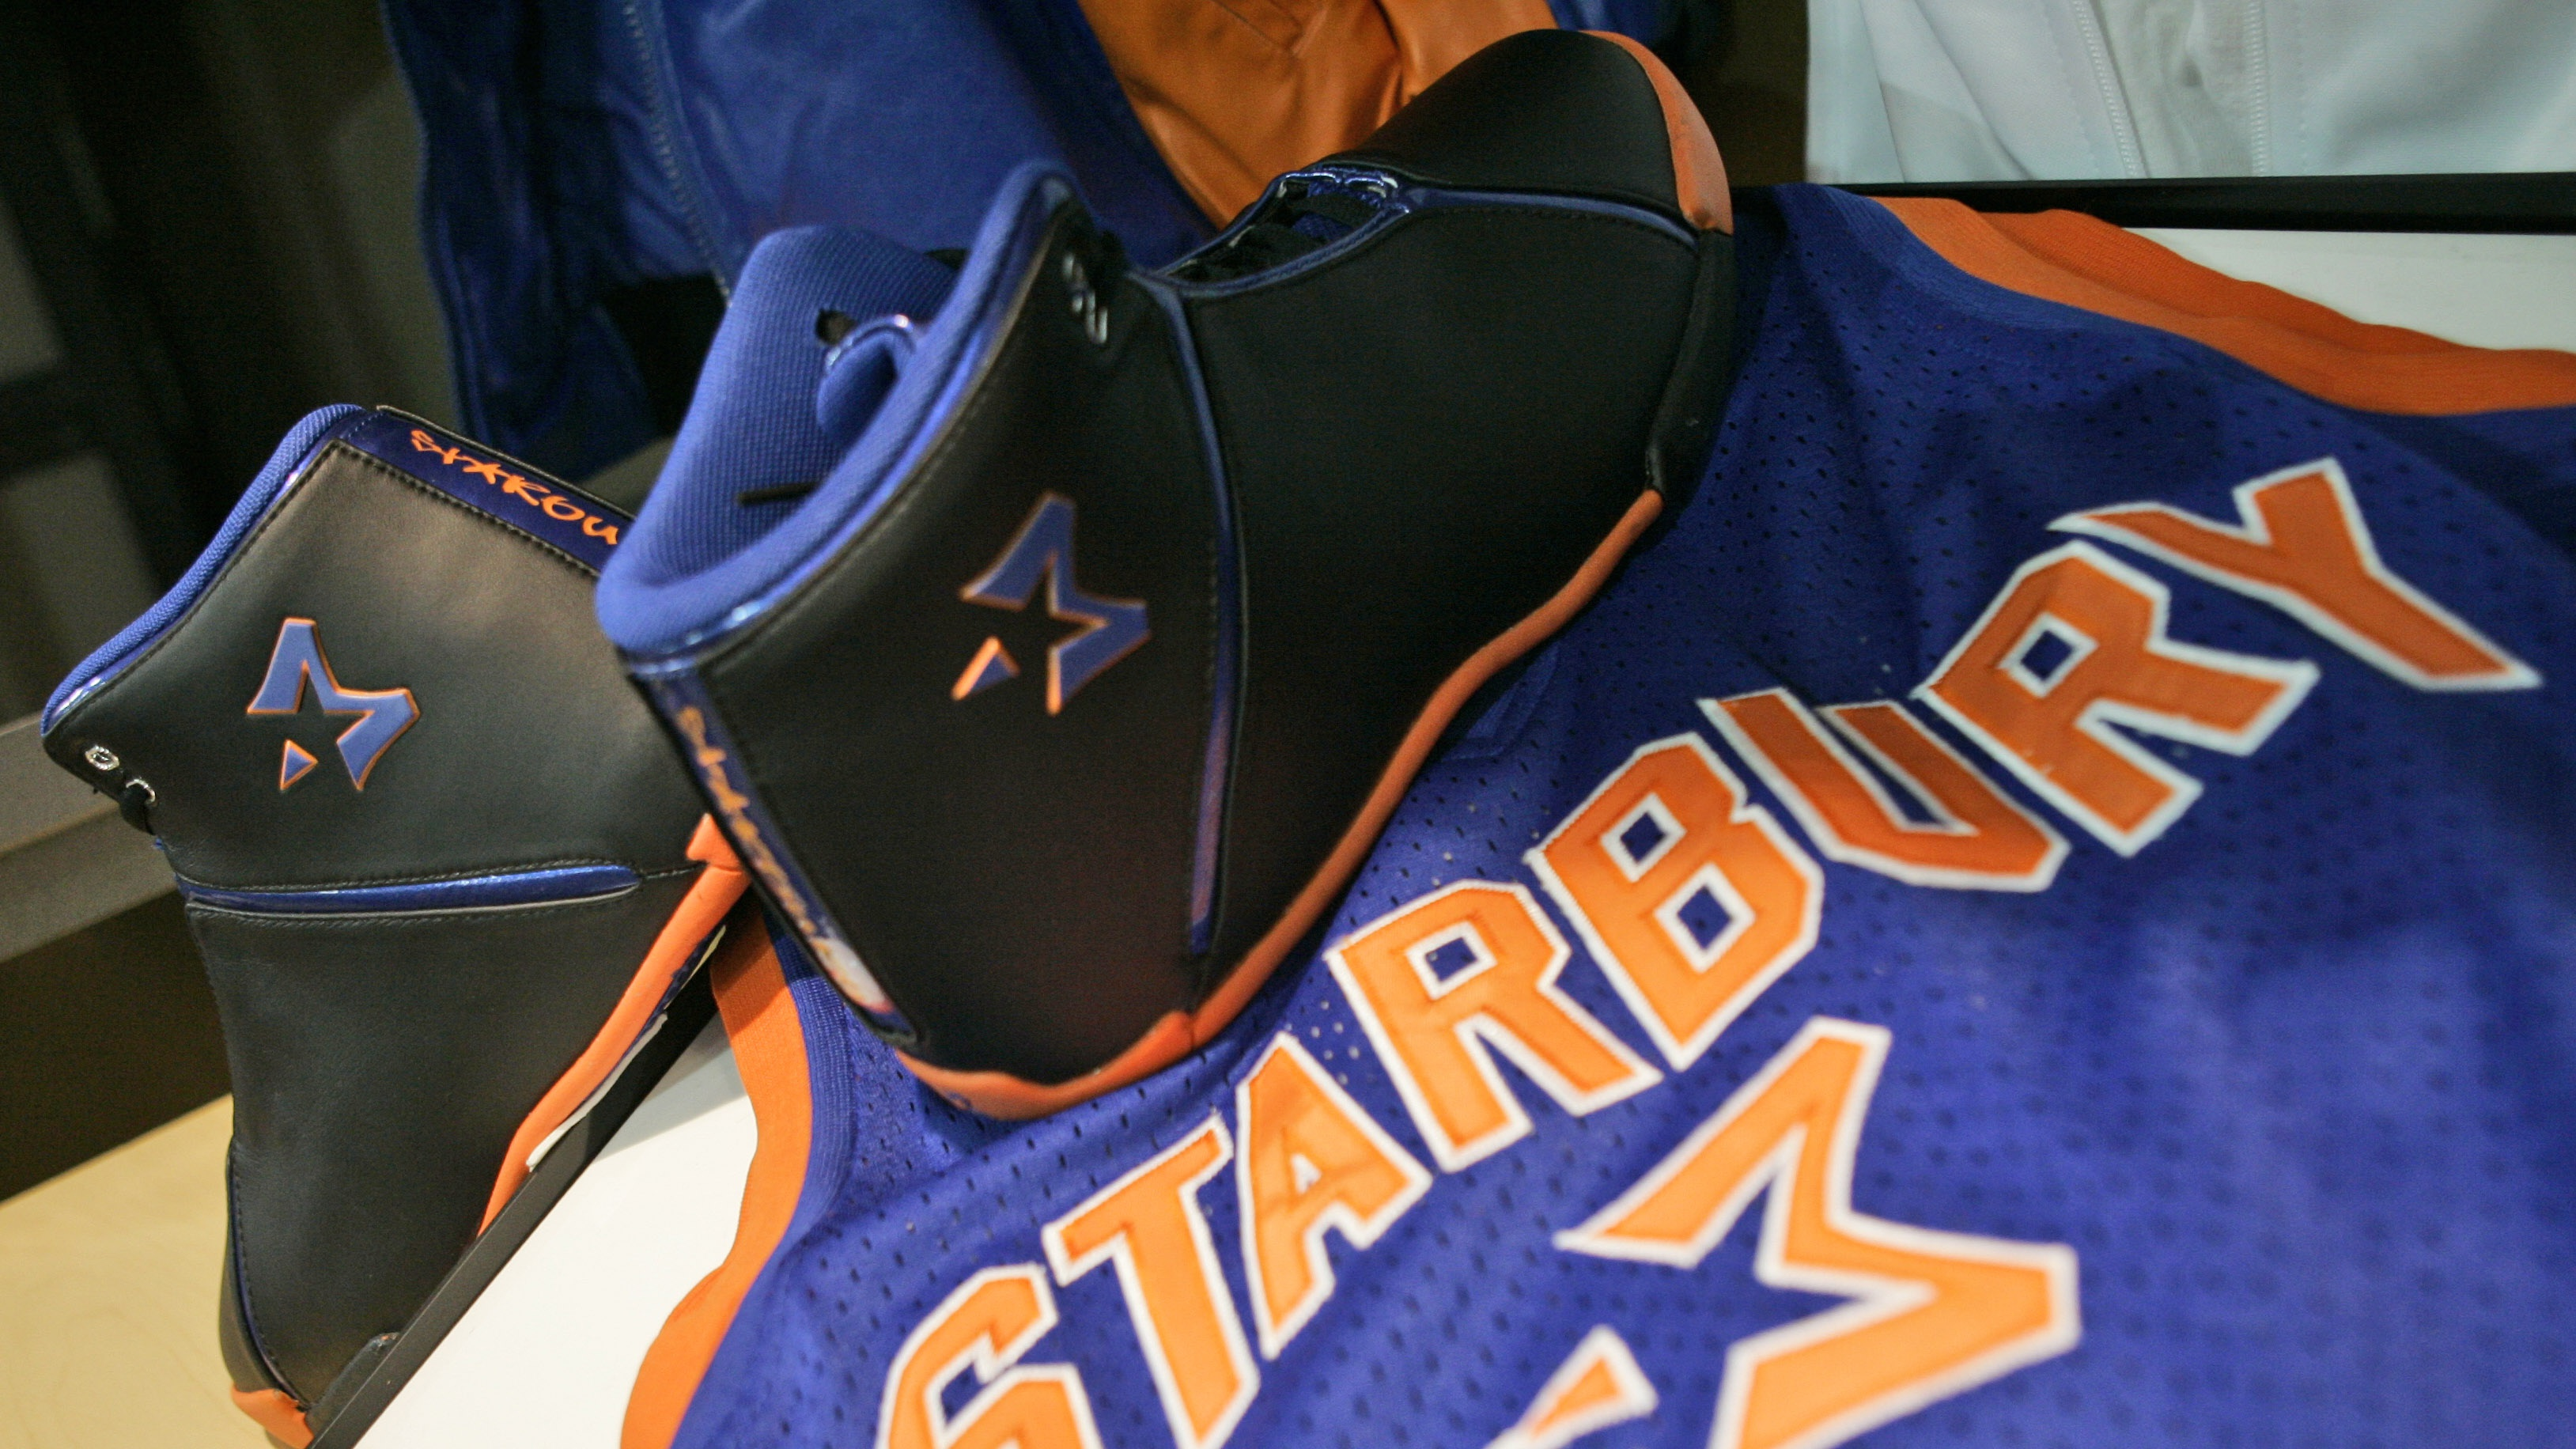 A pair of Starbury One high performance sneakers and a Starbury jersey are on display during a news conference Friday, Dec. 8, 2006 in New York.